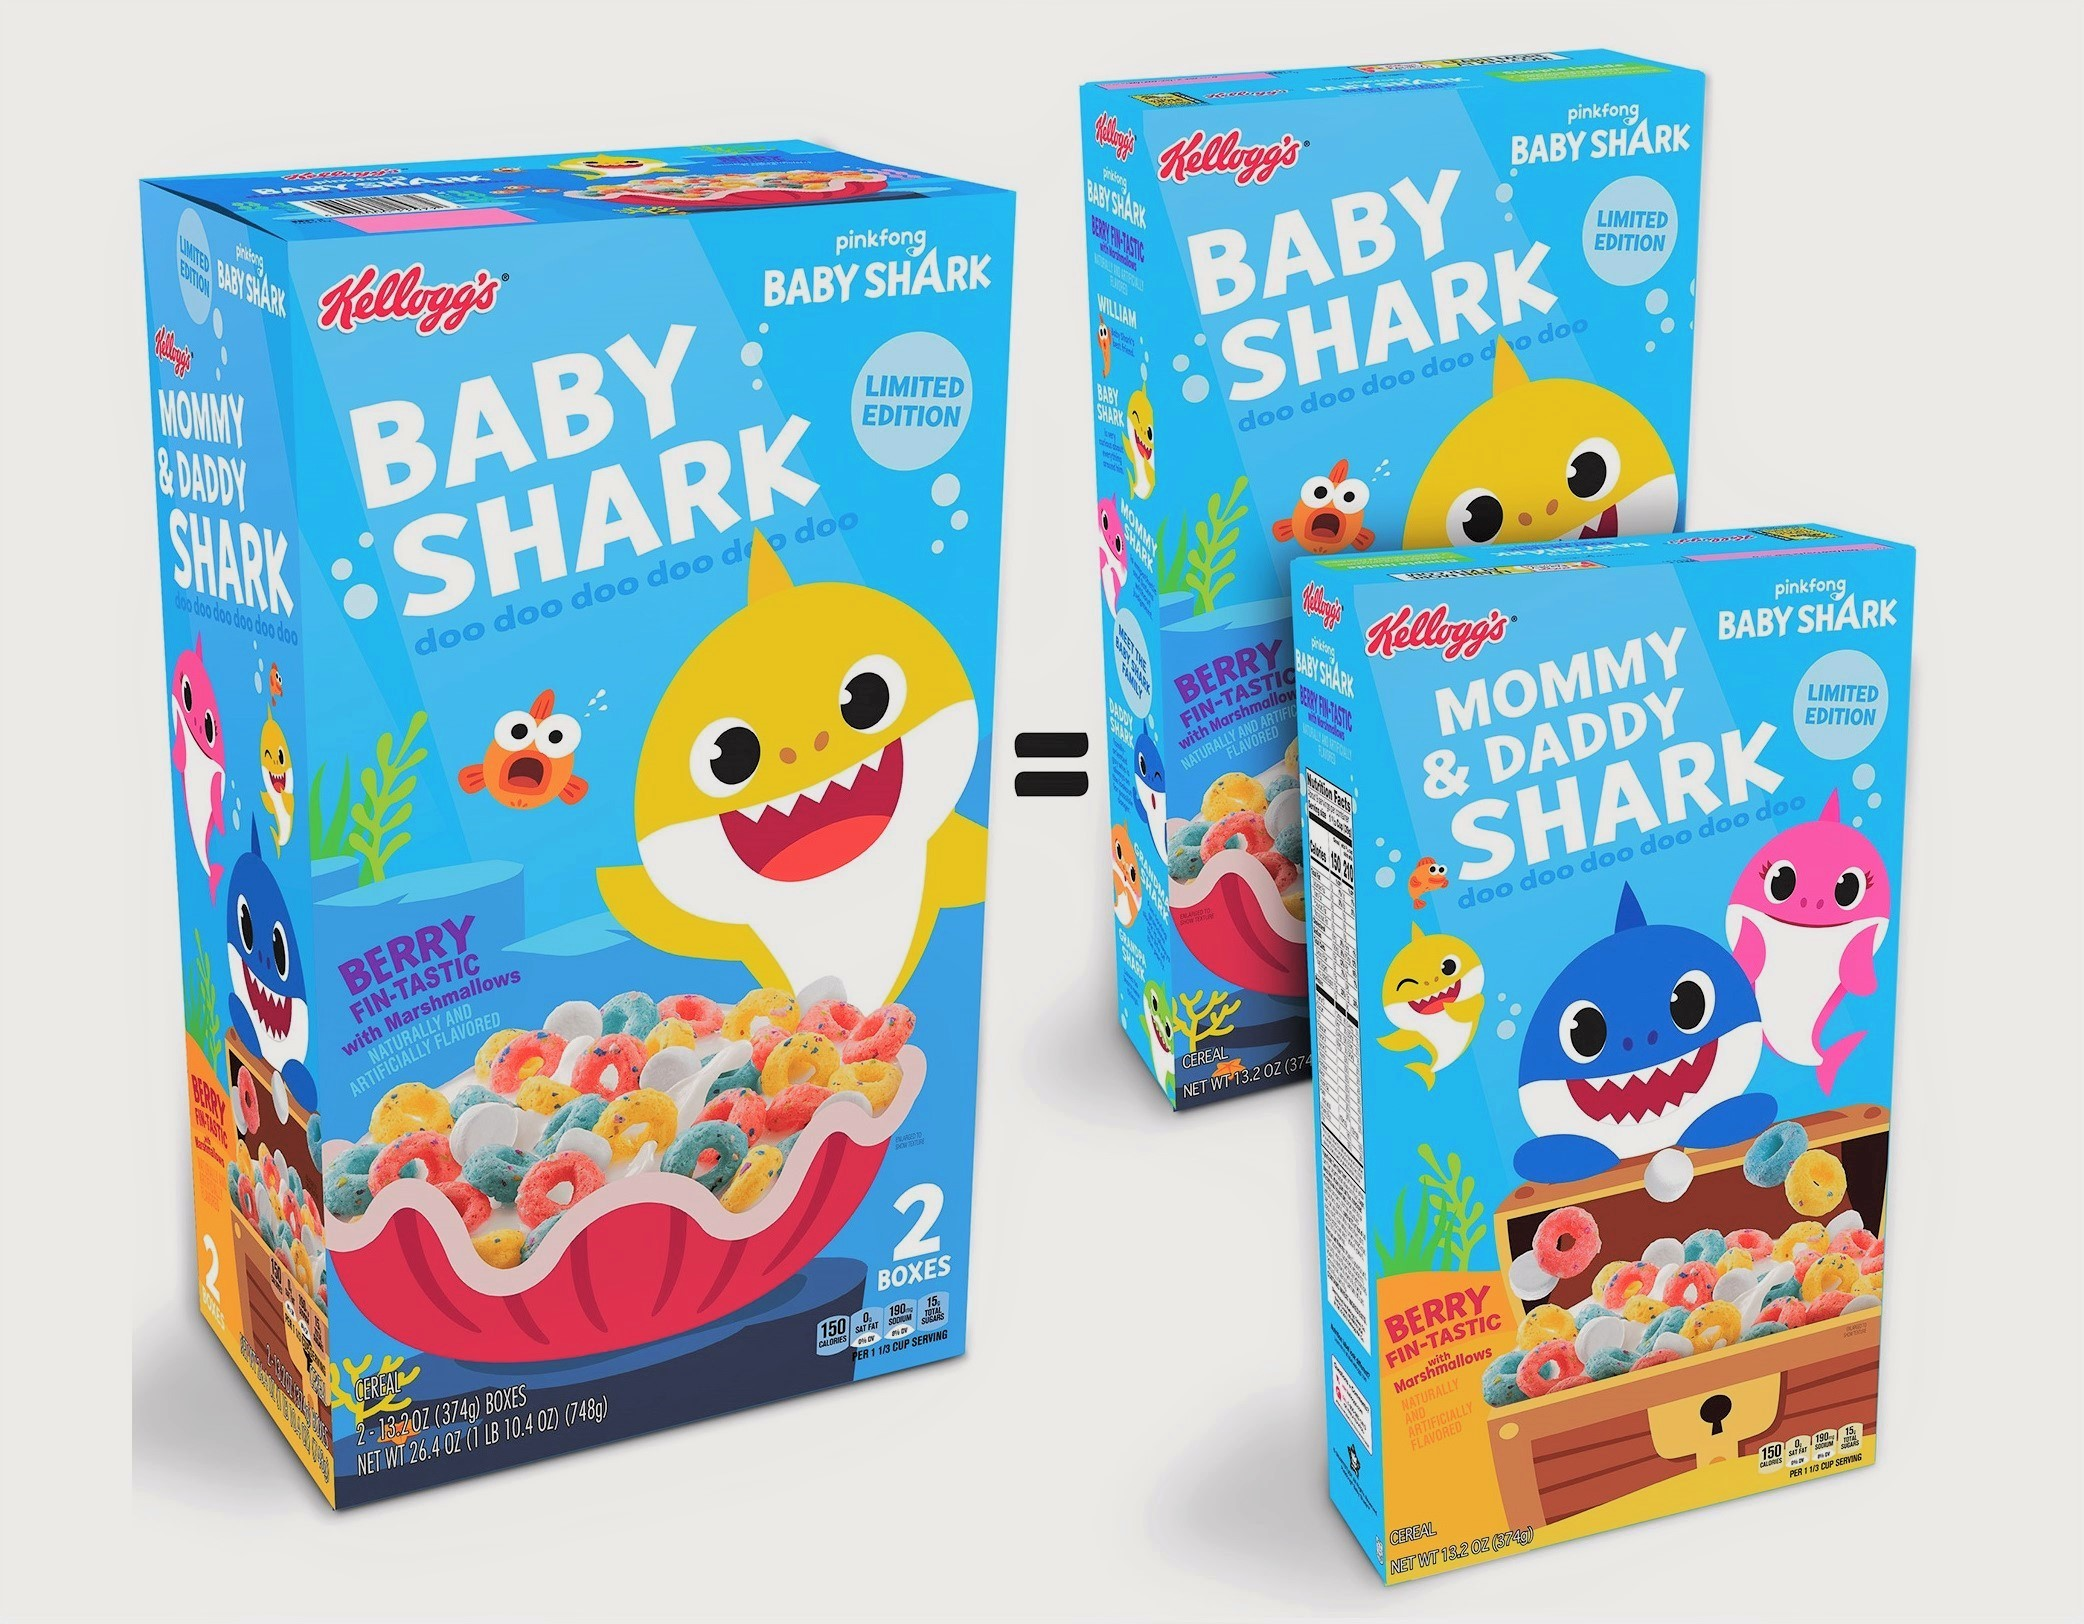 'Baby Shark' Is Hitting Food Shelves! Kellogg's Will Launch New Cereal Inspired by the Catchy Tune